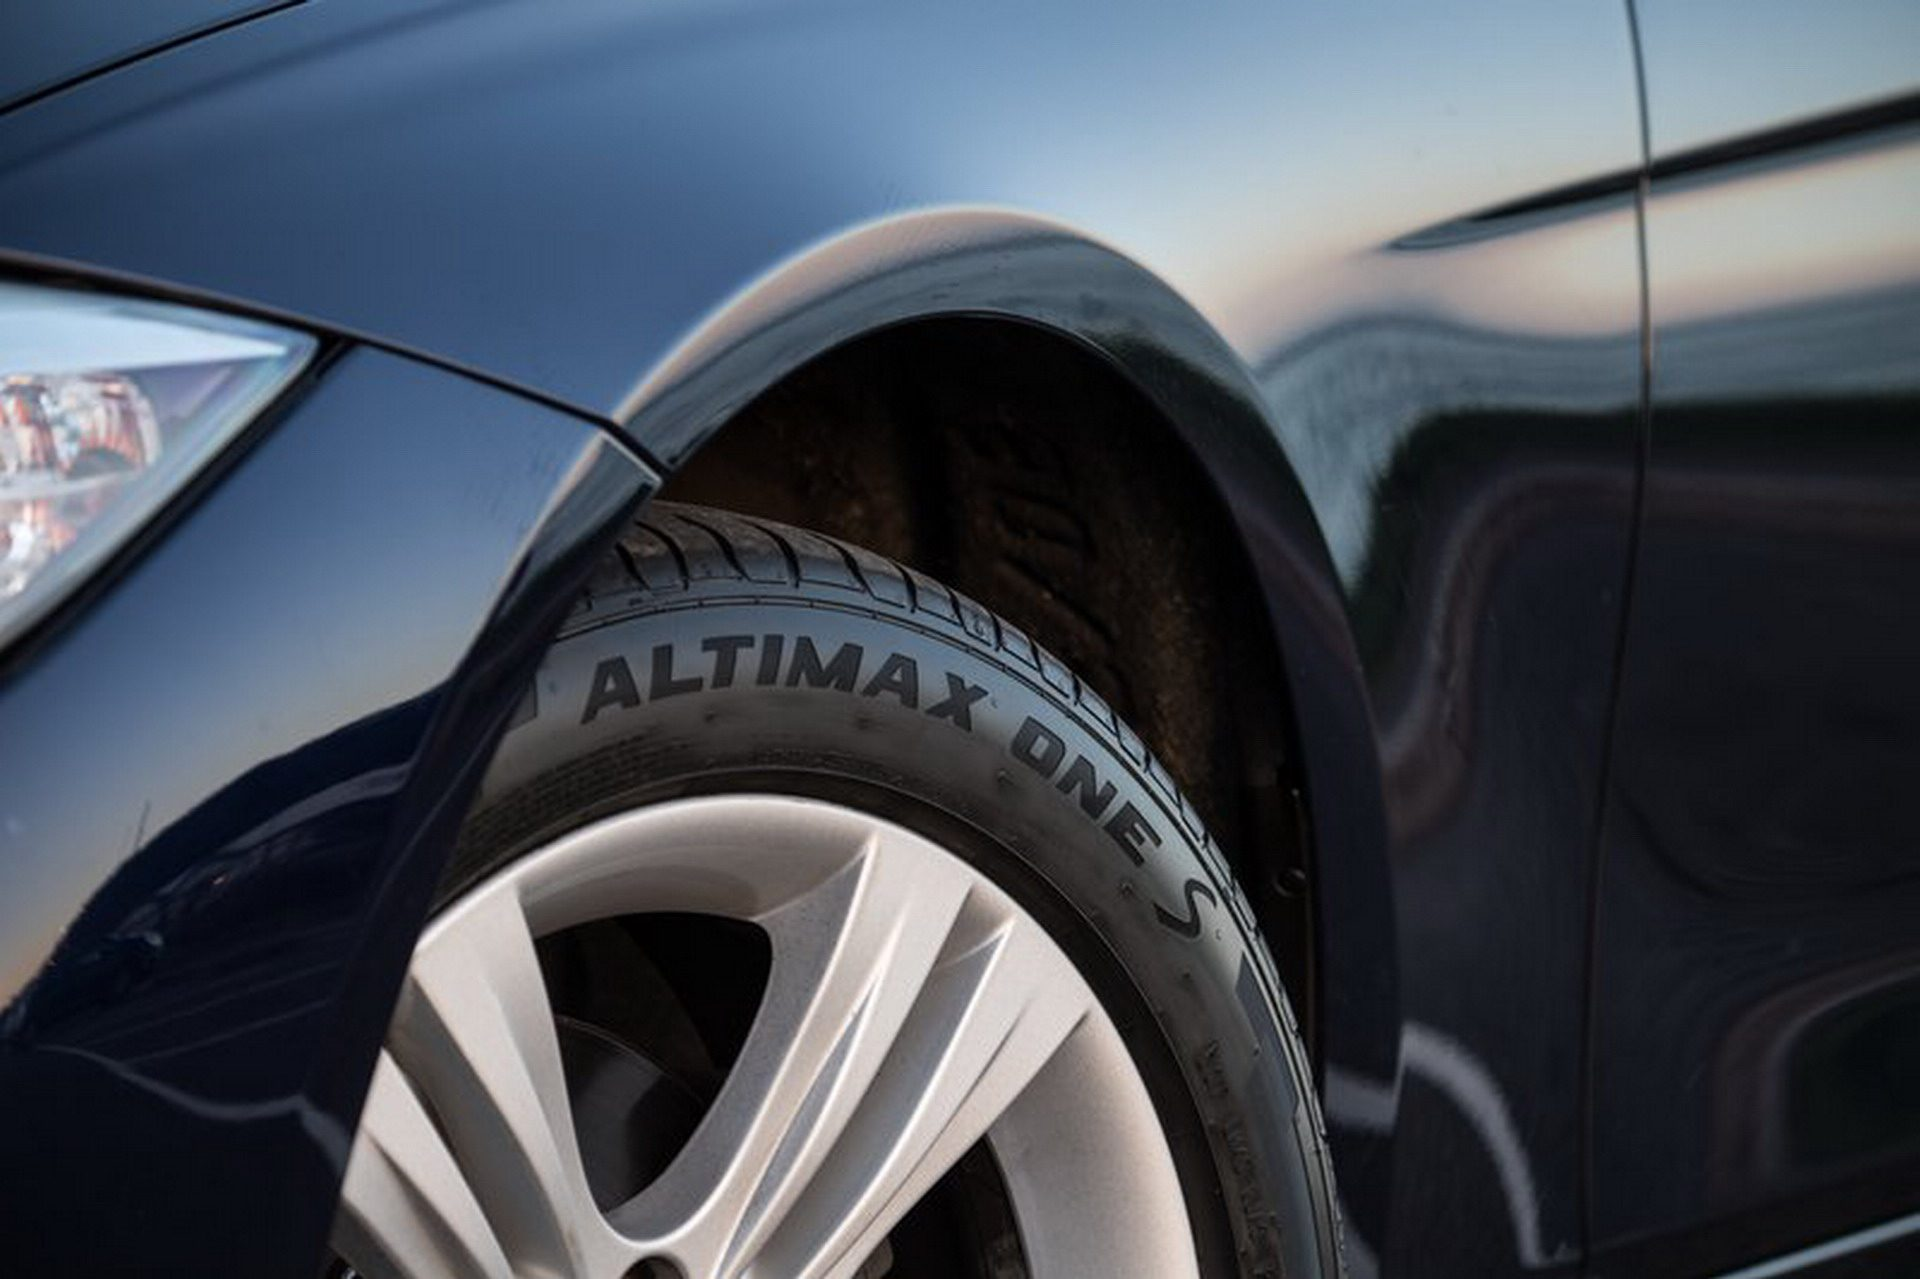 General Tire lancia Altimax One e Altimax One S, pneumatici per una guida in tutta sicurezza